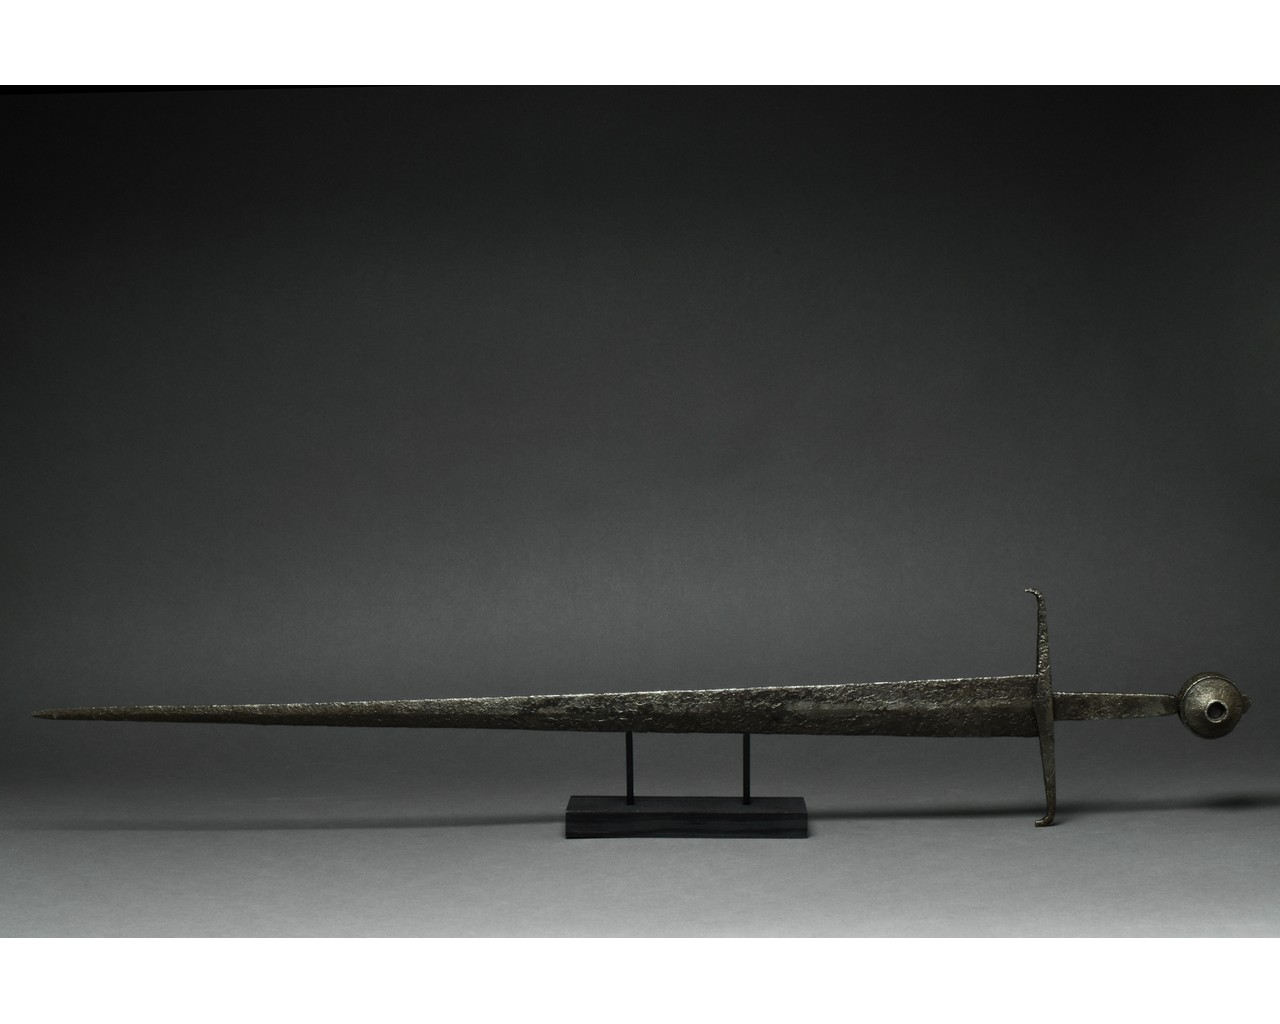 MEDIEVAL IRON SWORD WITH HANDLE - Image 3 of 9